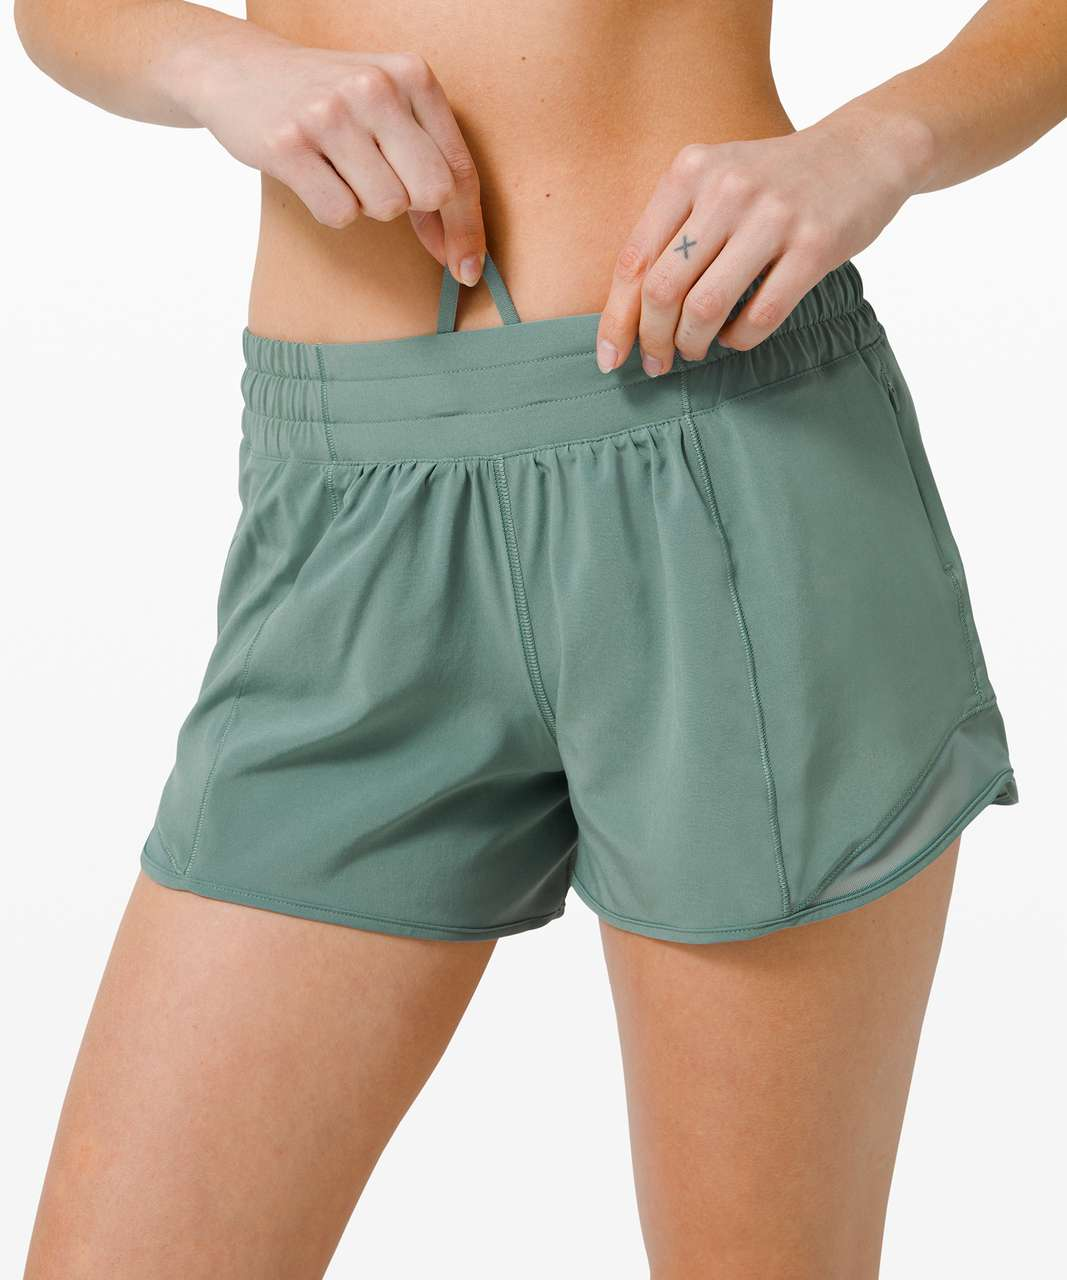 "Lululemon Hotty Hot Short II *Long 4"" - Tidewater Teal"